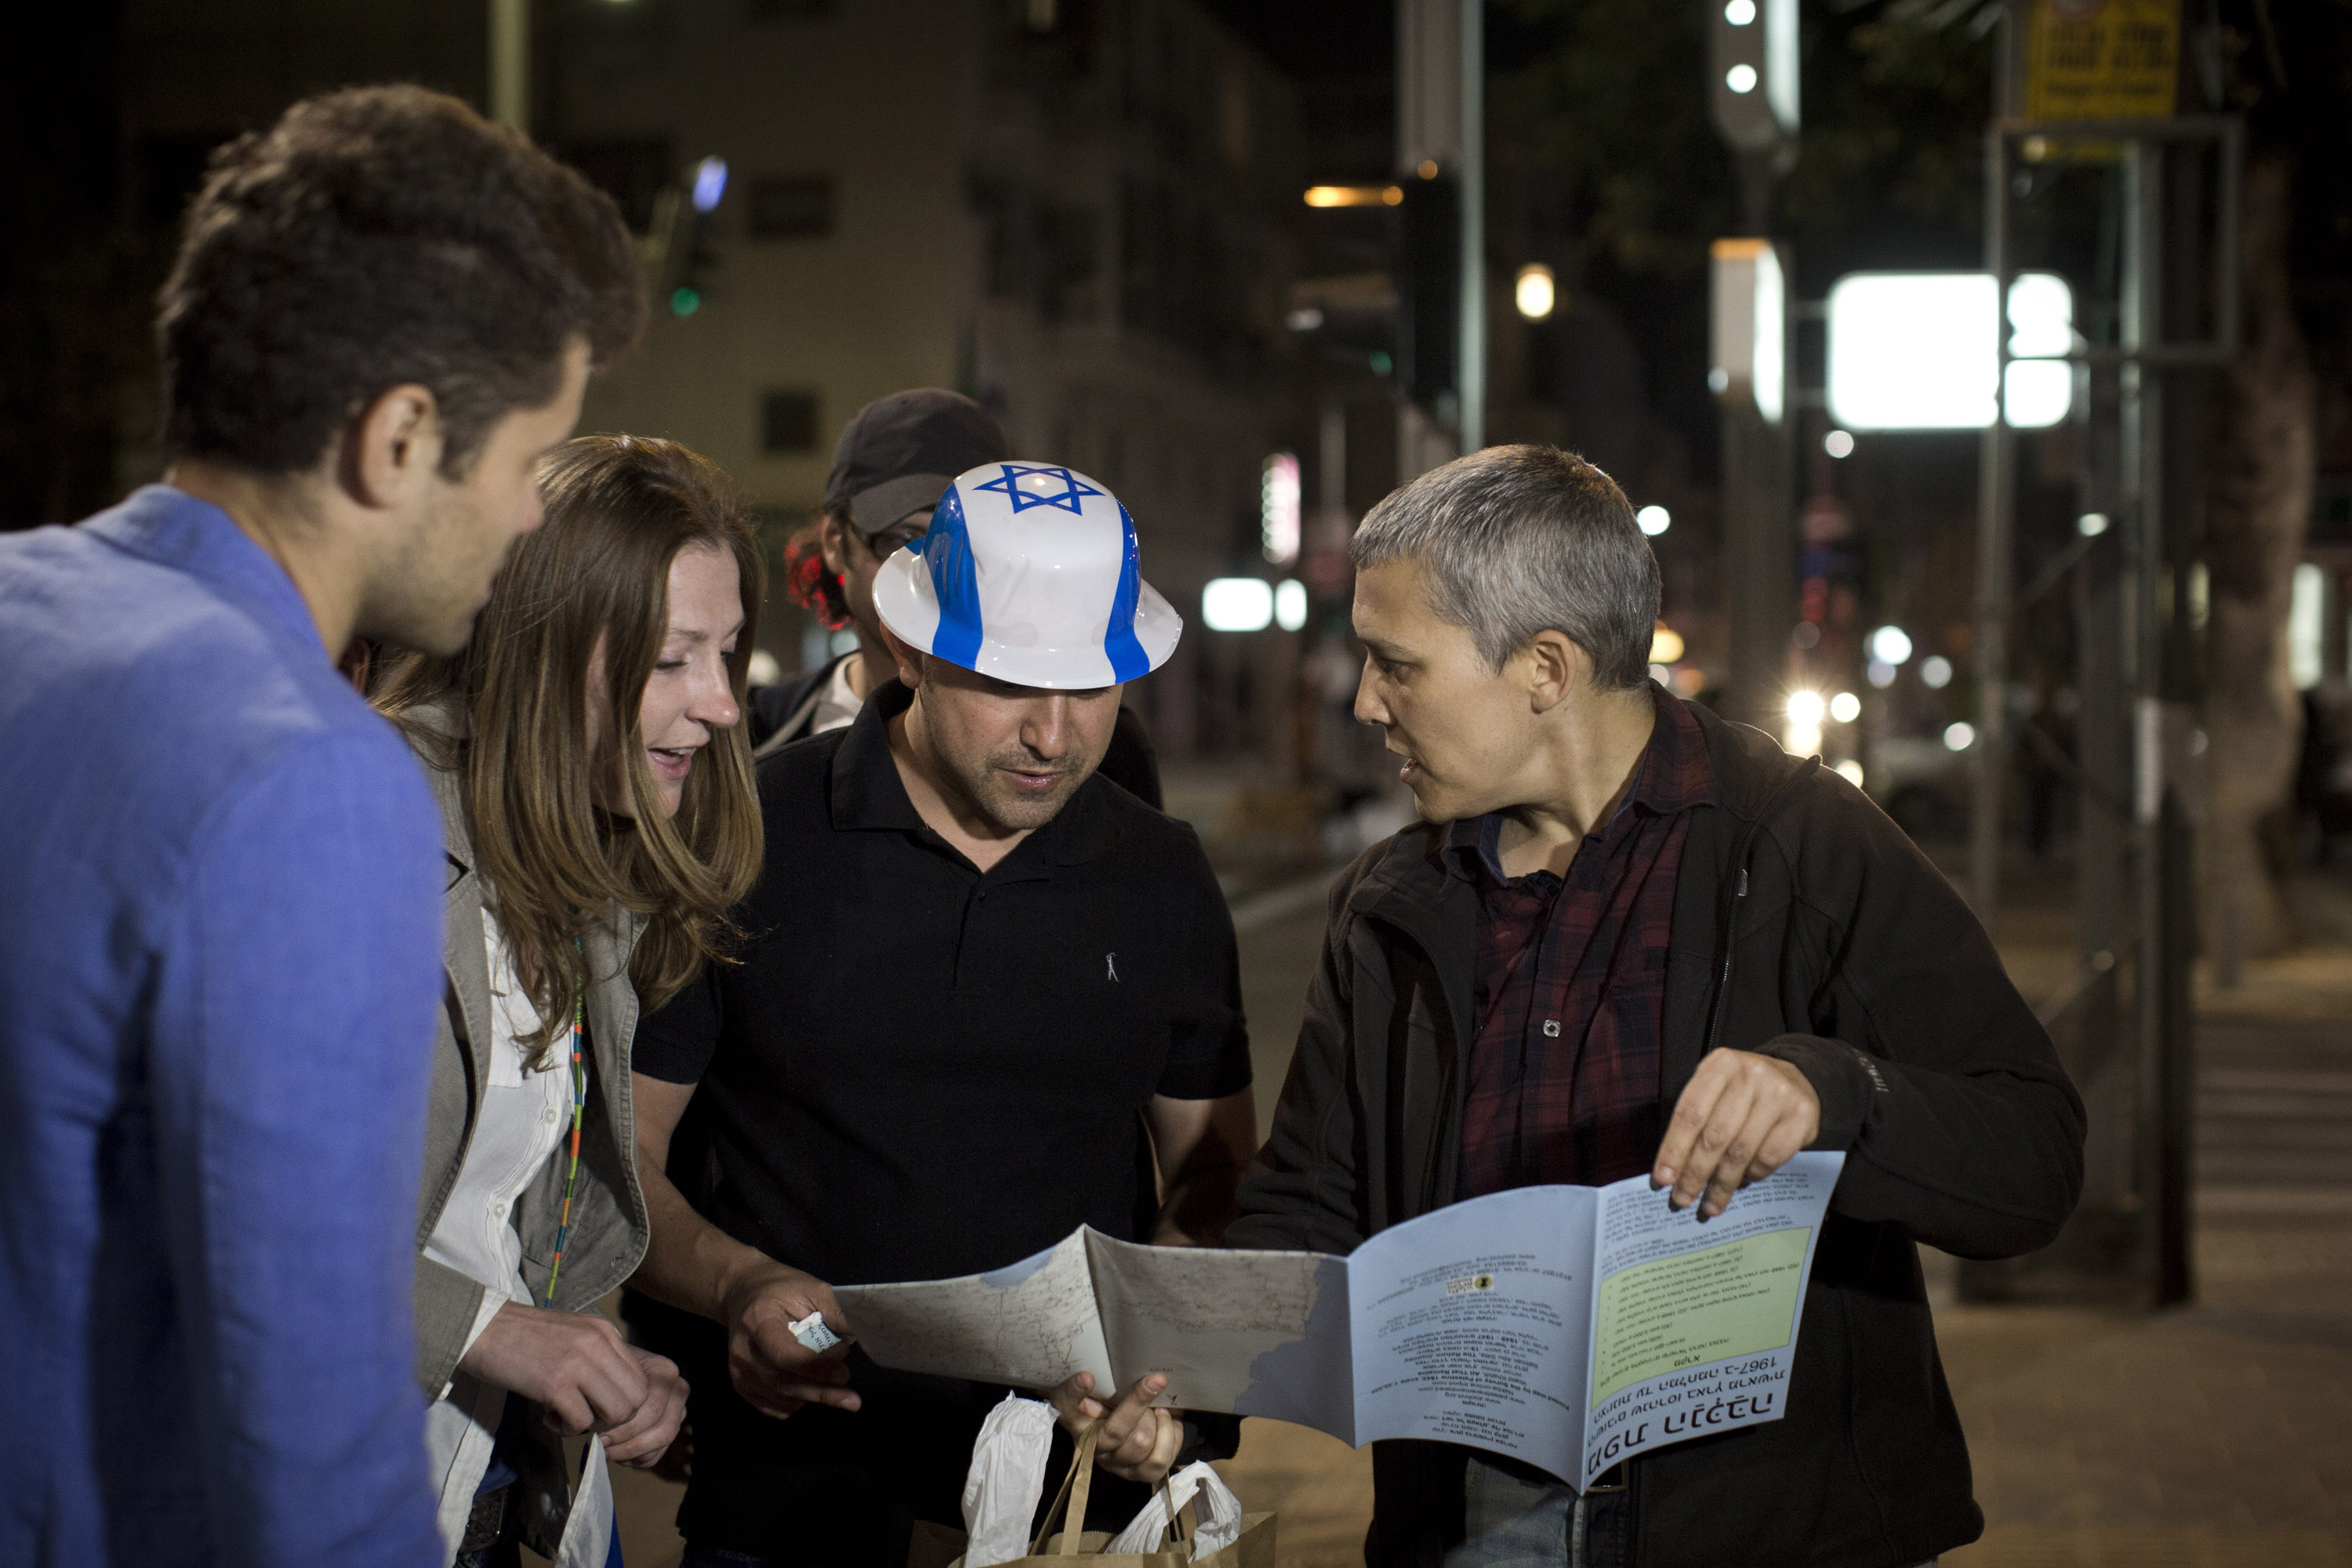 Group including man wearing flag of Israel hat looks at map